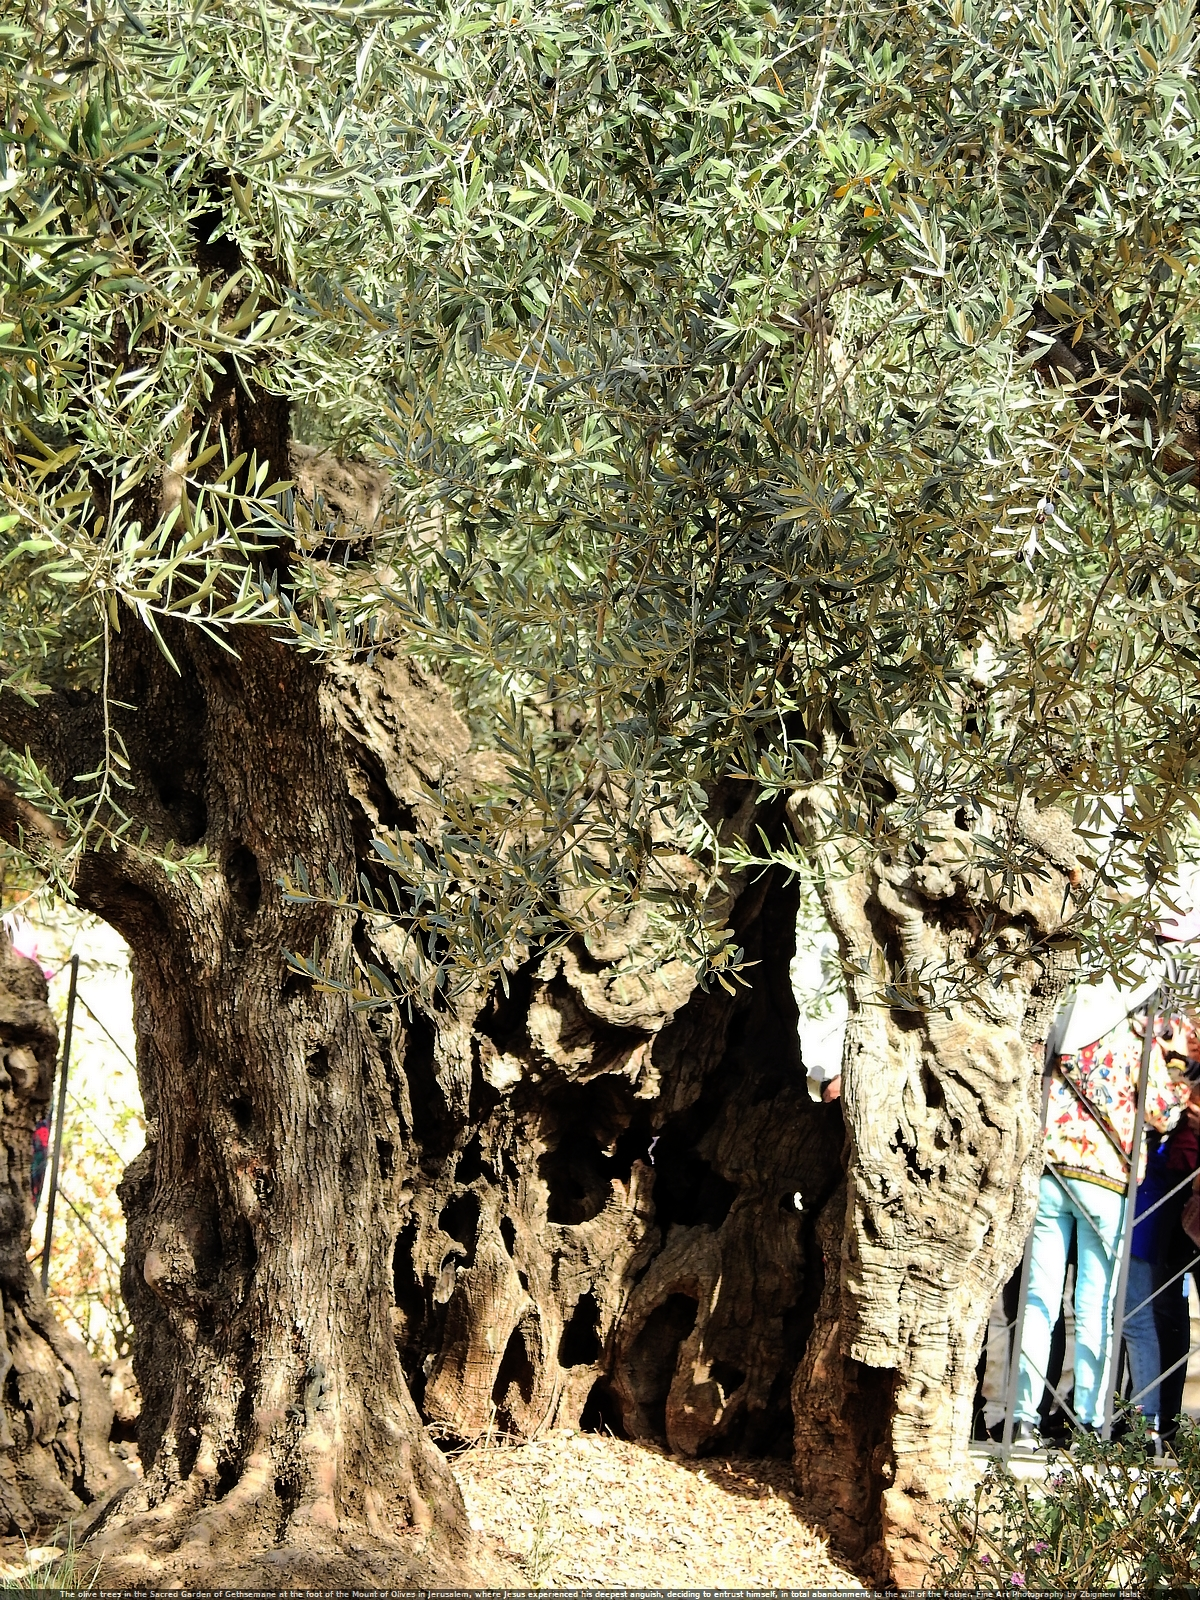 The olive trees in the Sacred Garden of Gethsemane at the foot of the Mount of Olives in Jerusalem, where Jesus experienced his deepest anguish, deciding to entrust himself, in total abandonment, to the will of the Father. Fine Art Photography by Zbigniew Halat